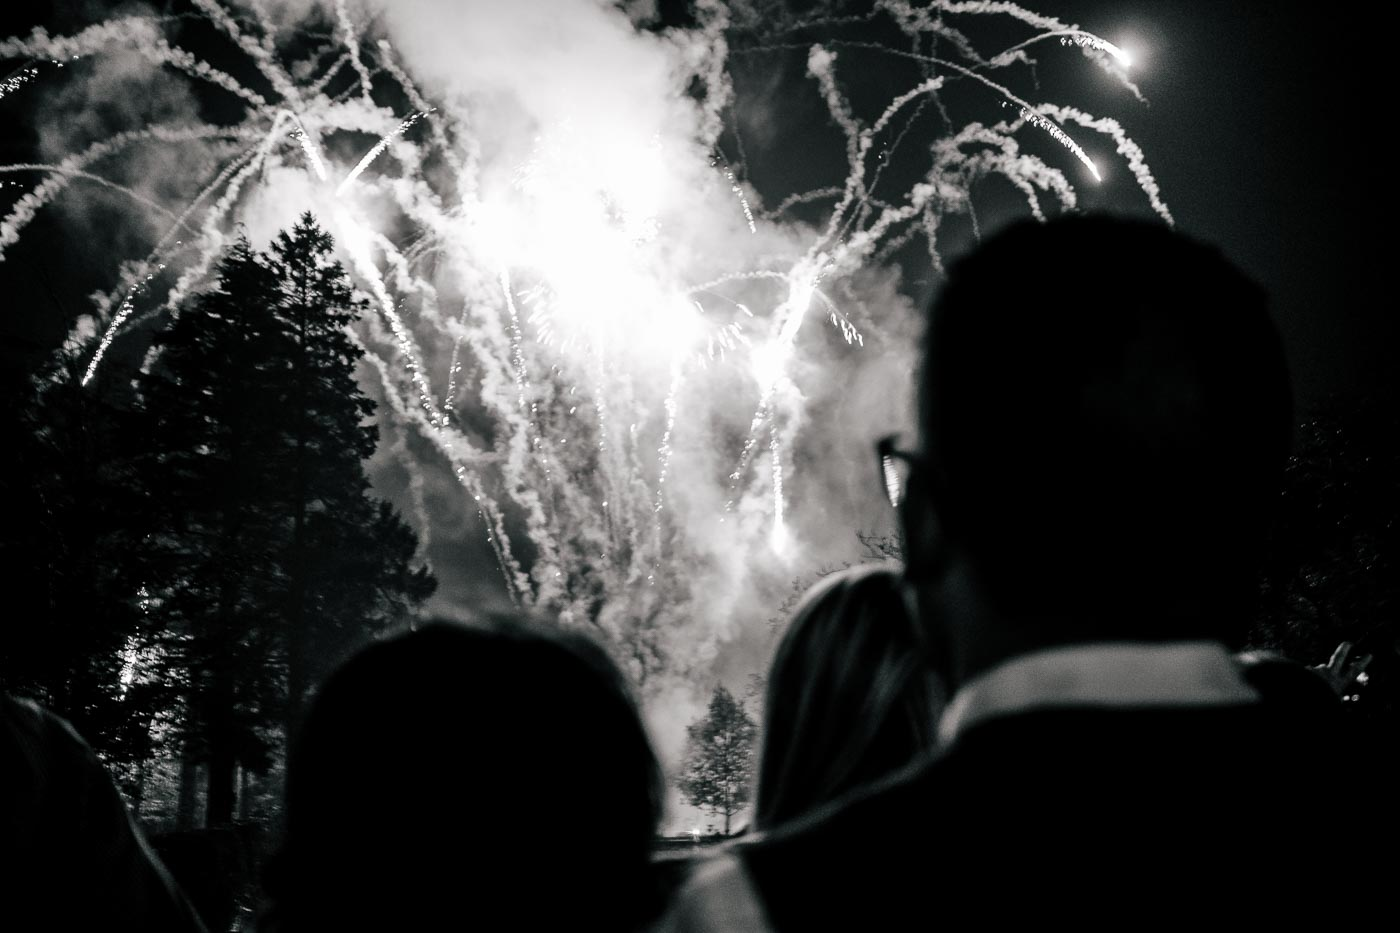 eaves hall fireworks display